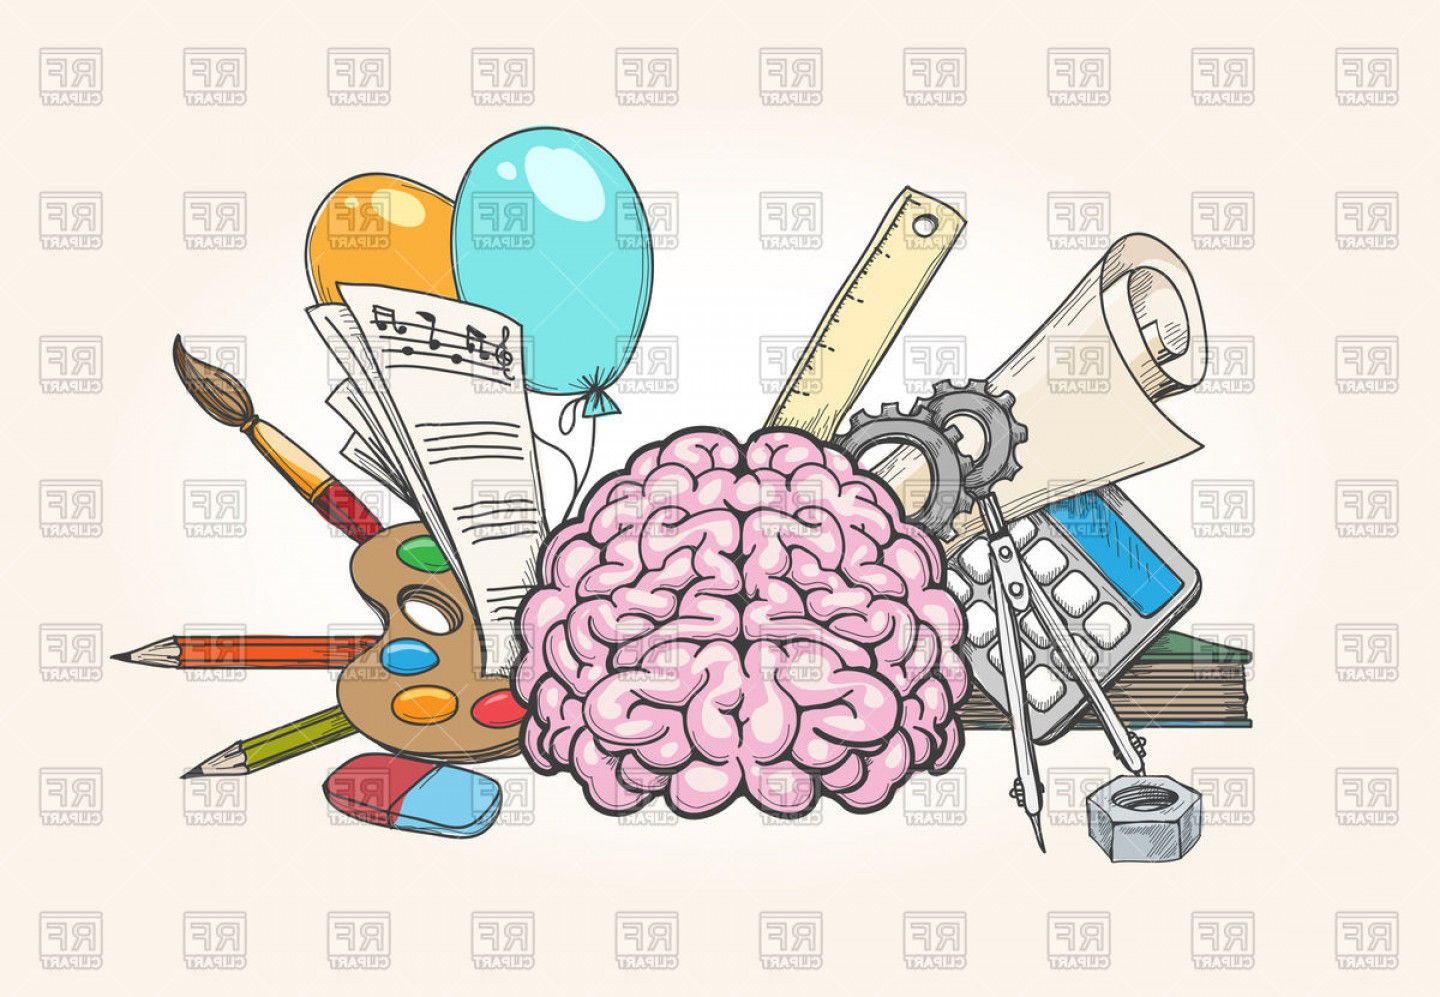 Parts of the brain clipart black and white Left And Right Brain Concept Human Brain Creativity And ... black and white